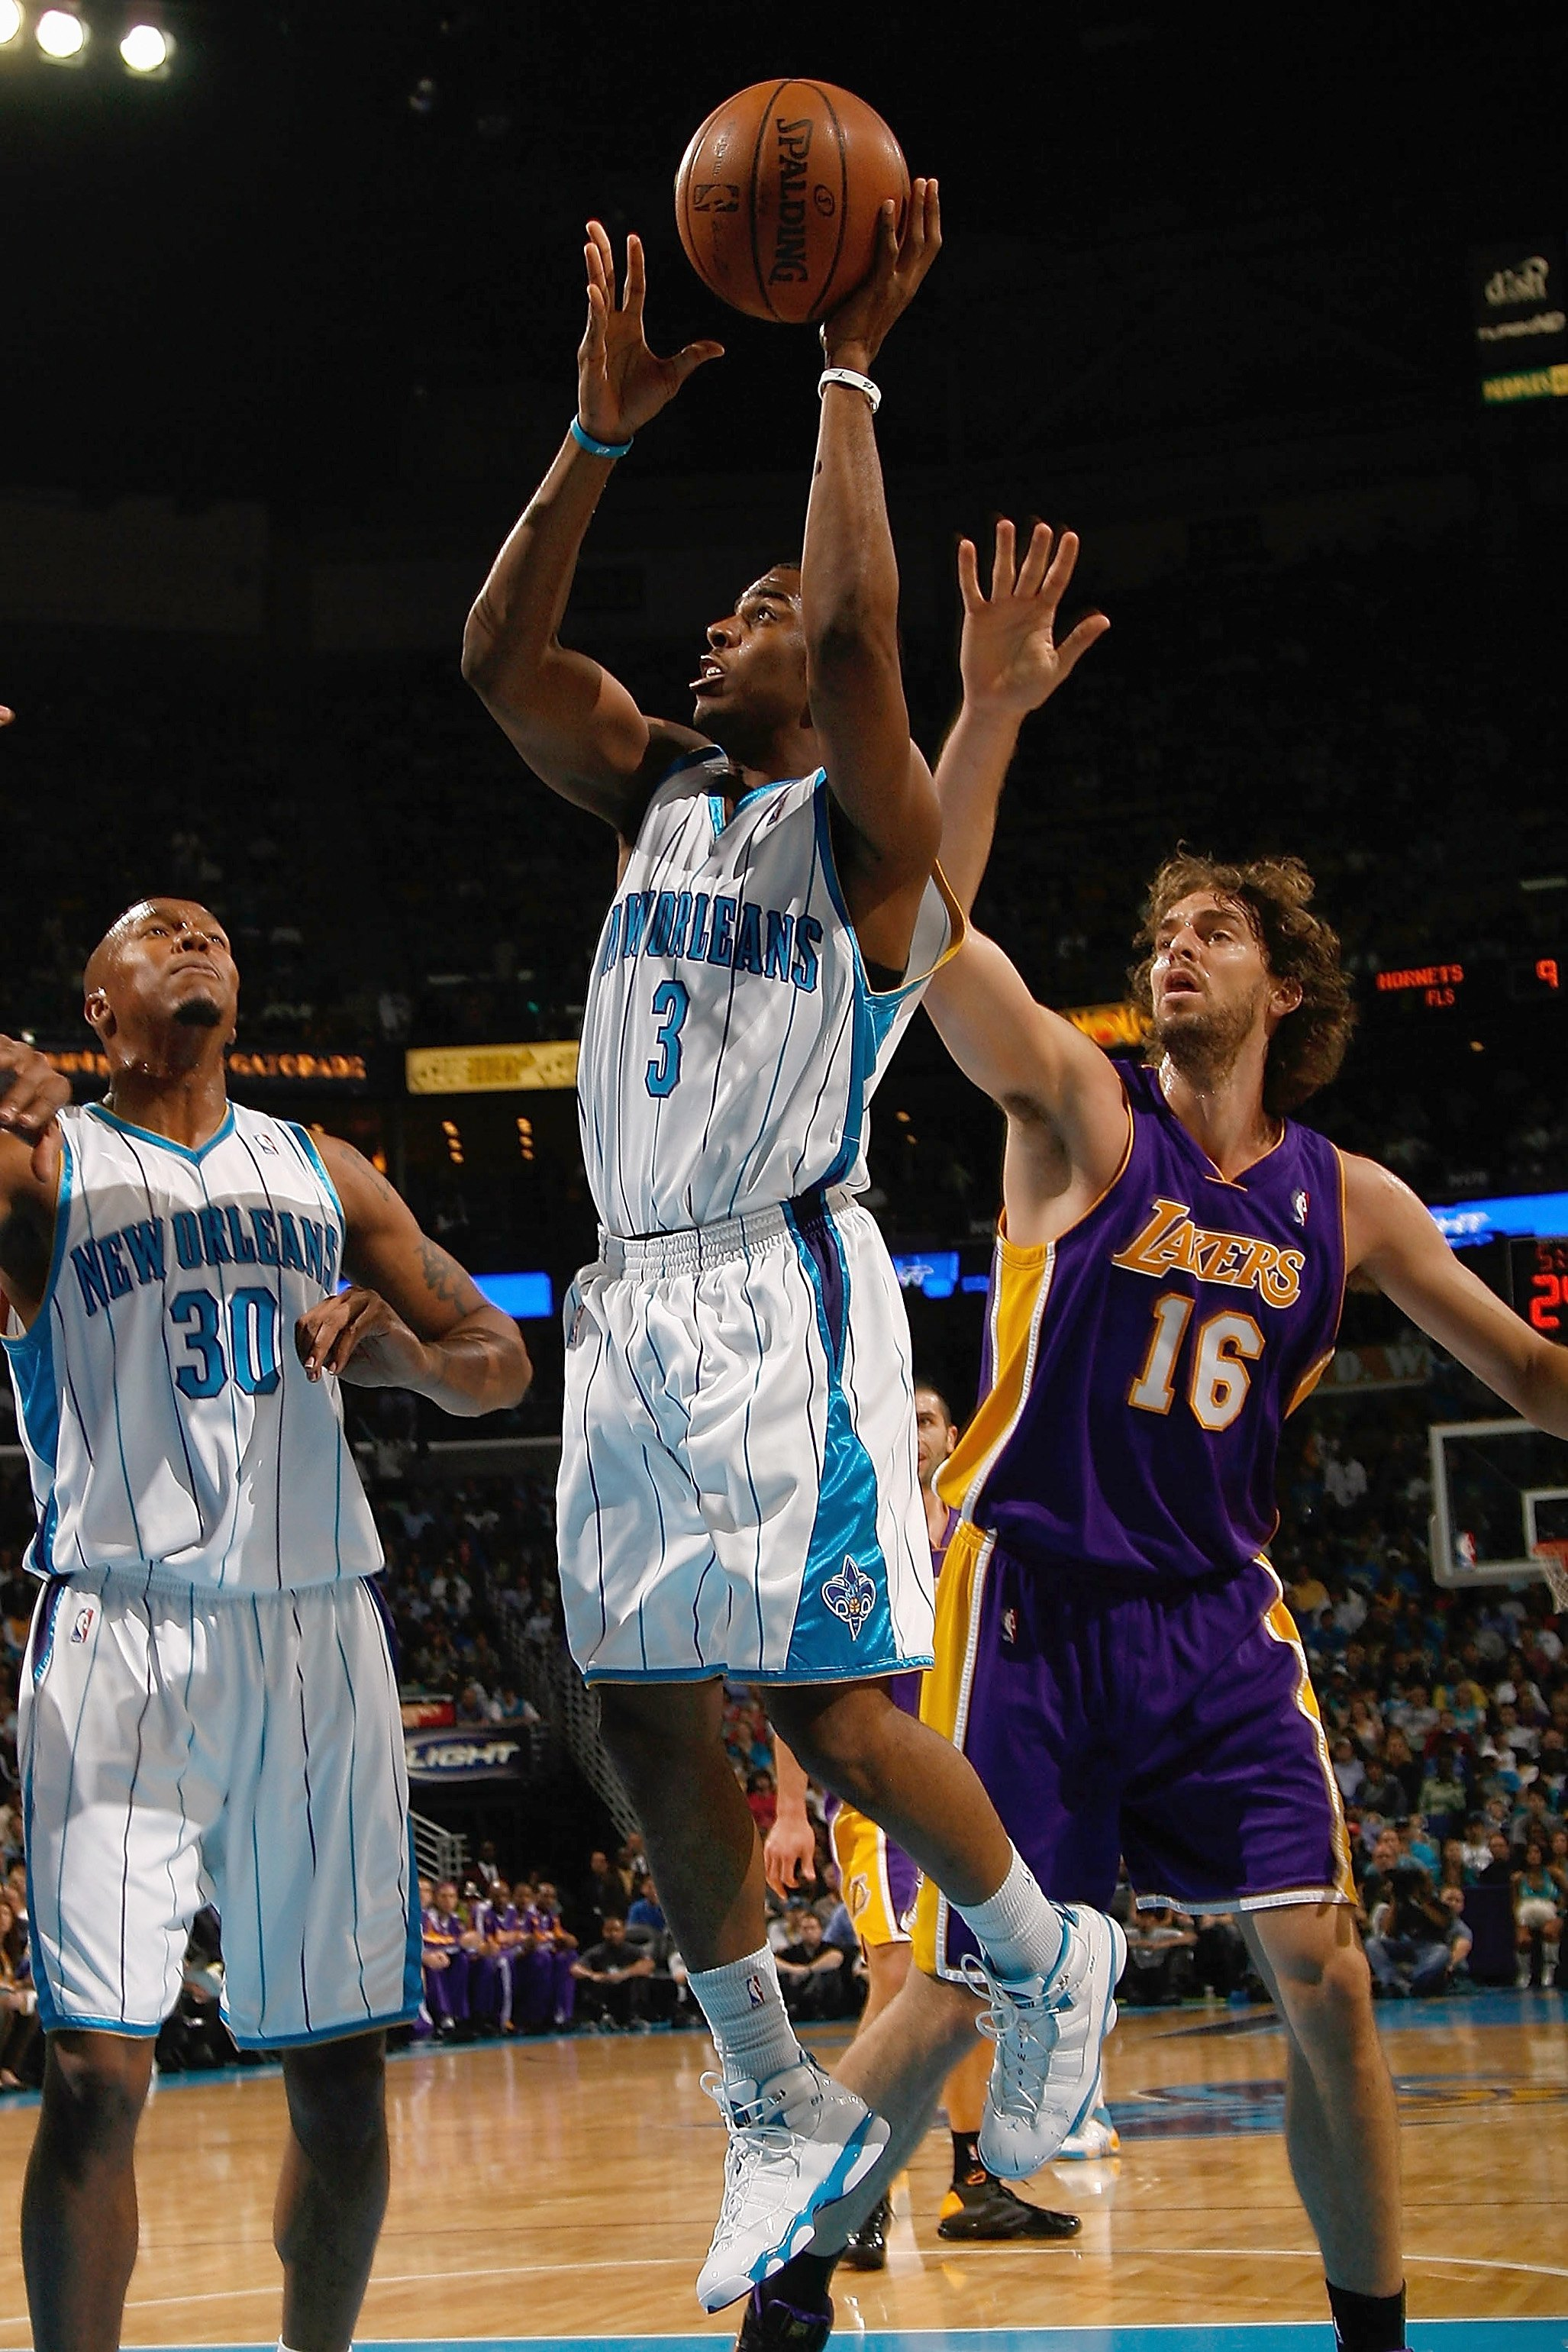 NEW ORLEANS - NOVEMBER 12:  Chris Paul #3 of the New Orleans Hornets looks to shoot against Pau Gasol #16 of the Los Angeles Lakers at the New Orleans Arena on November 12, 2008 in New Orleans, Louisiana. The Lakers won 93-86. NOTE TO USER: User expressly